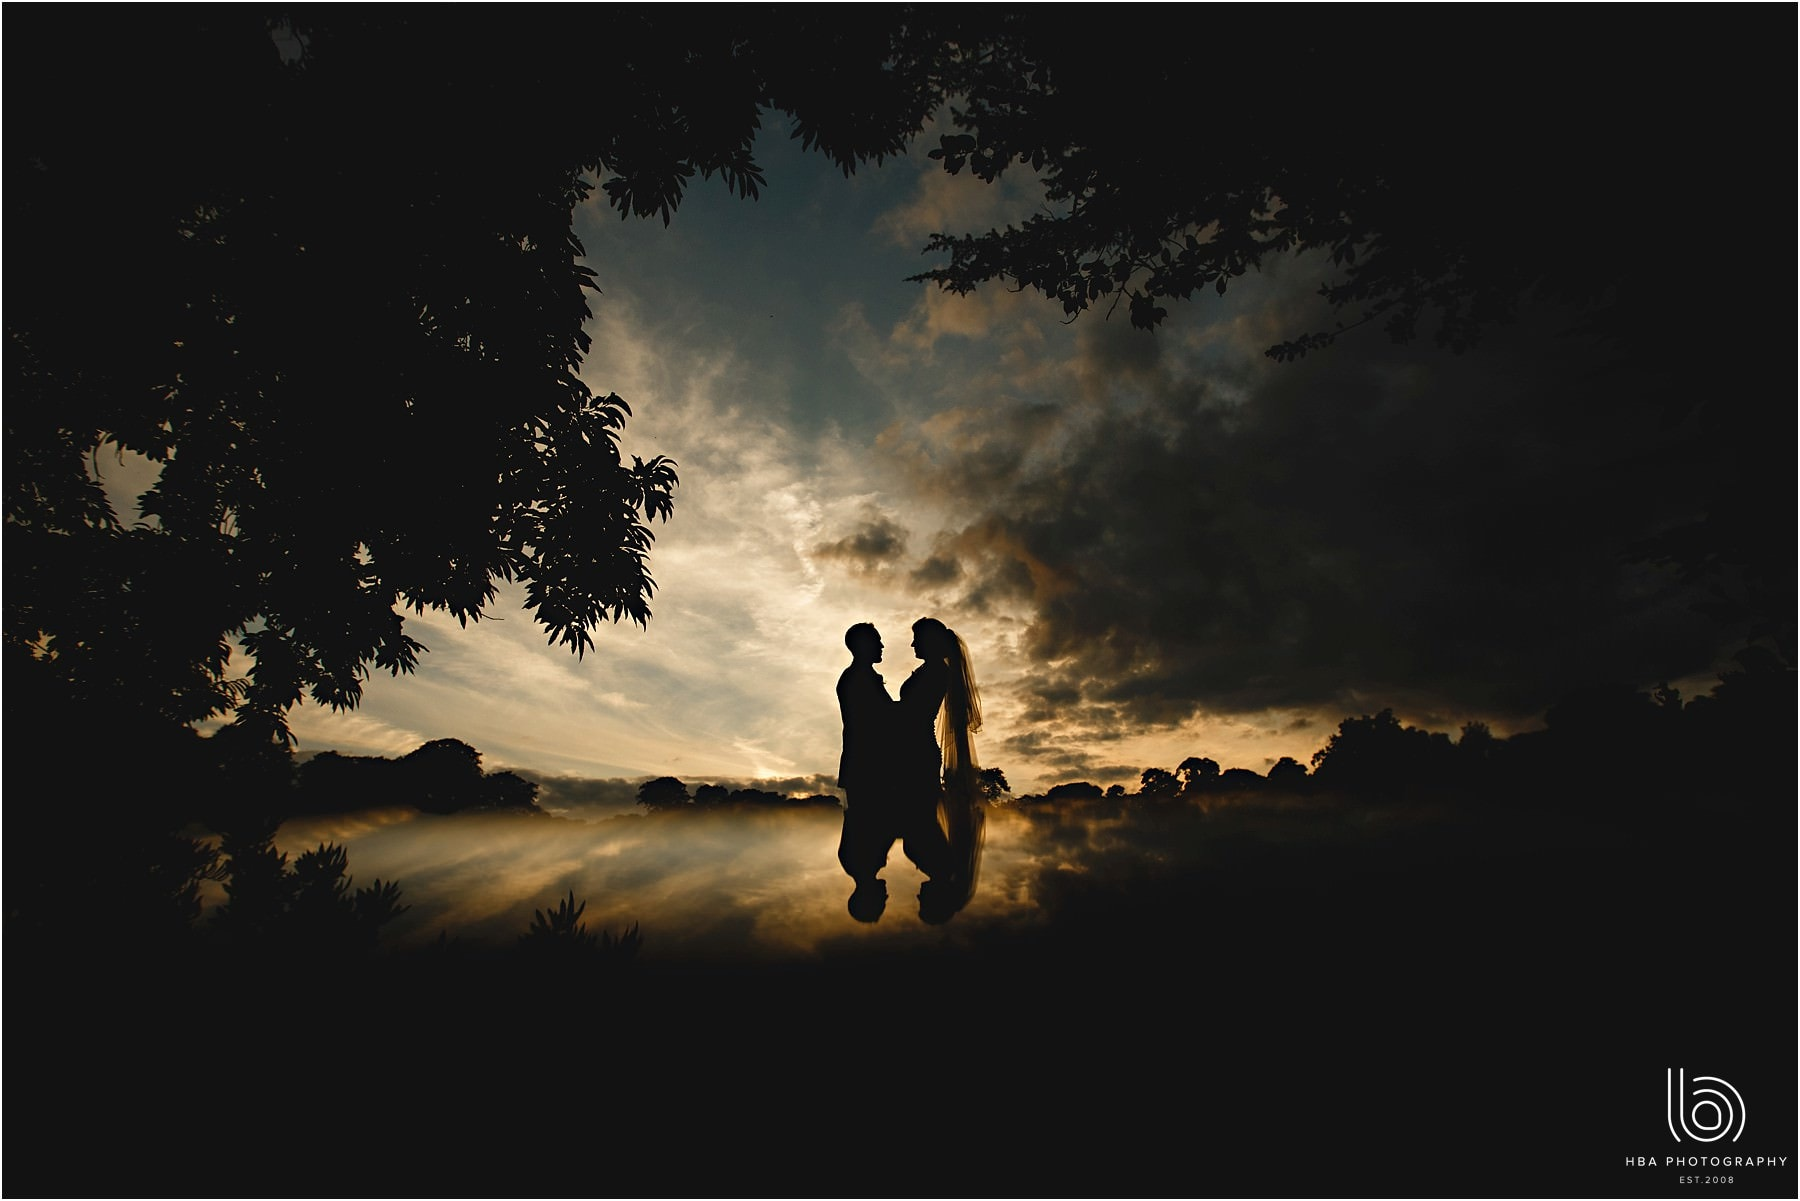 the bride & groom in silhouette in the sunset